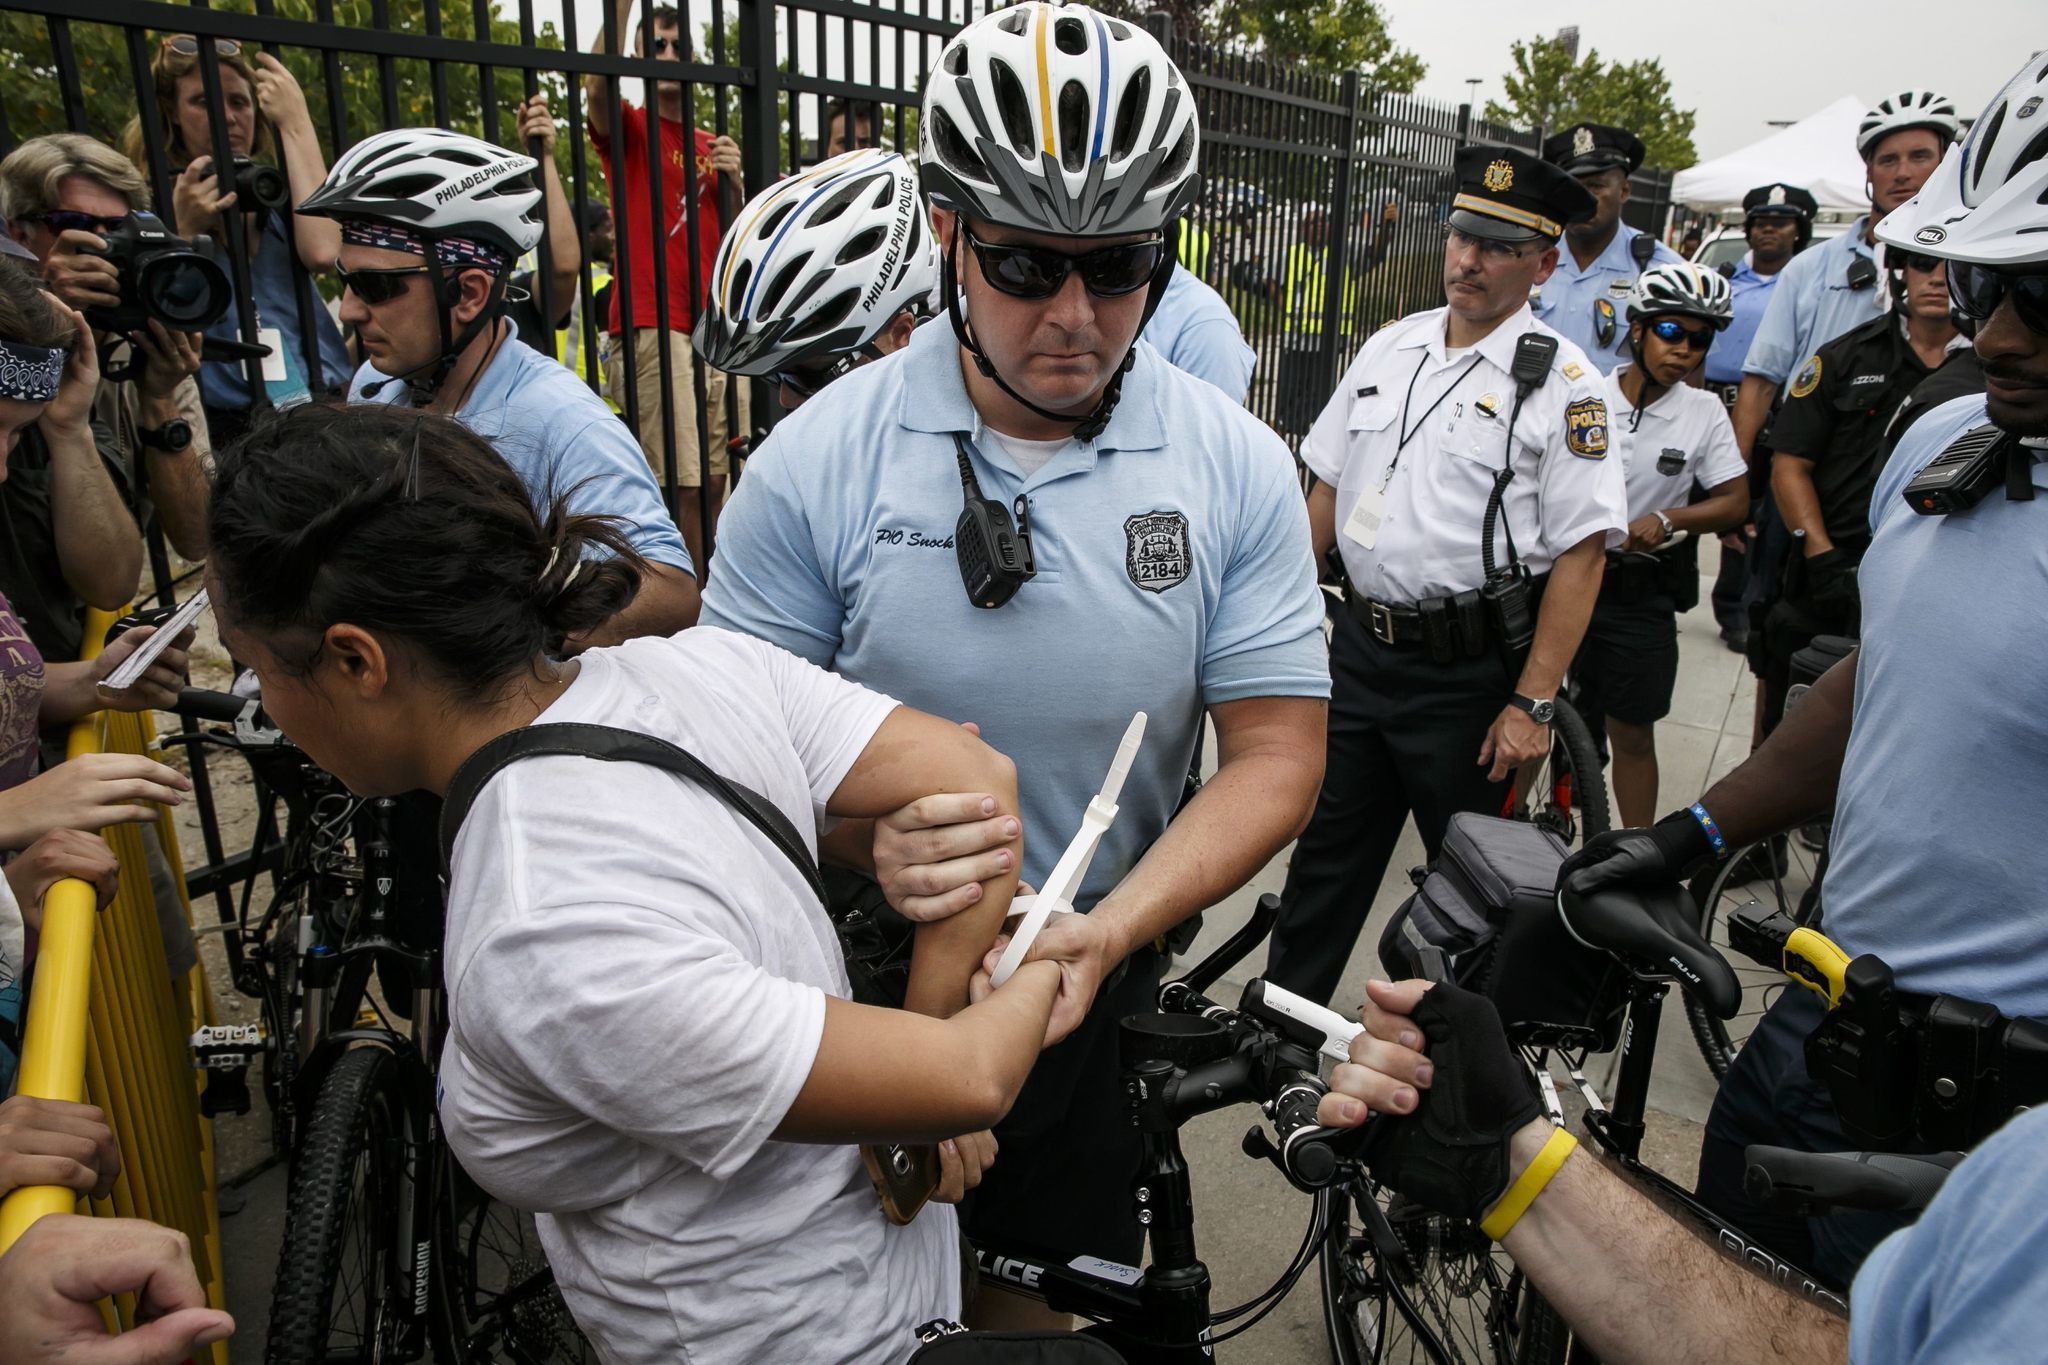 Protesters are detained as they cross a barrier set up by police outside the Democratic National Convention.